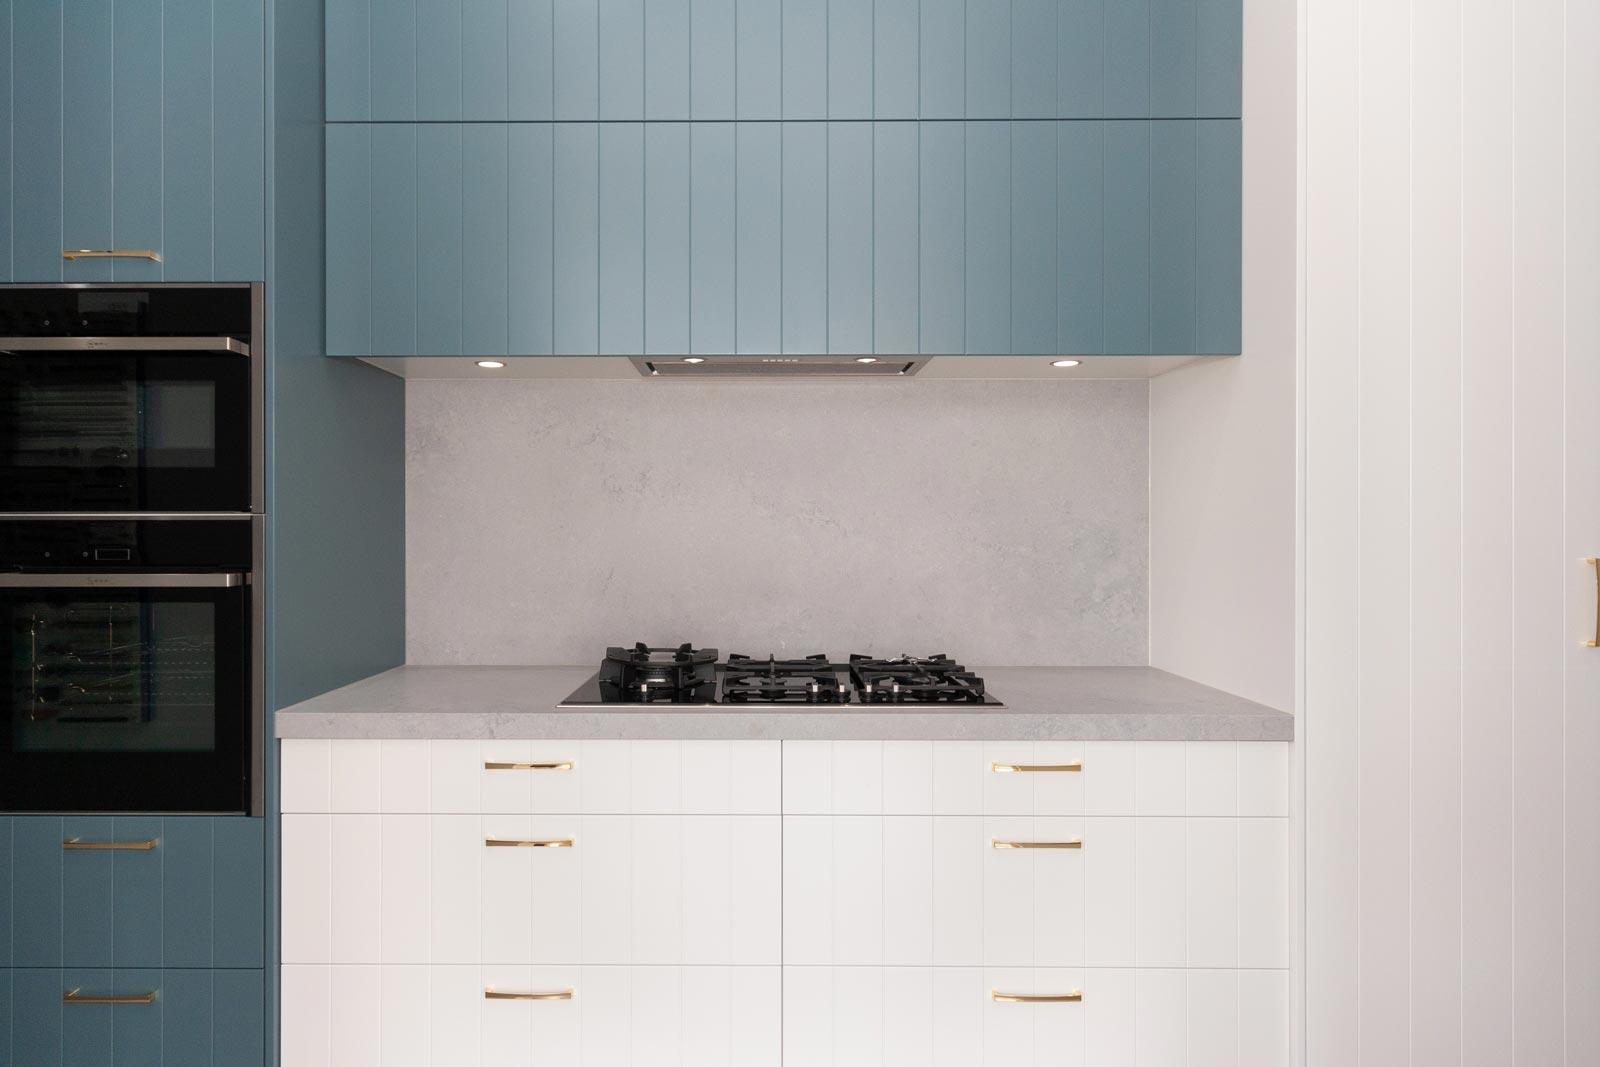 Kitchen design display featuring Caesarstone Airy Concrete benchtop at Premier Kitchen's Showroom, Drummoyne.